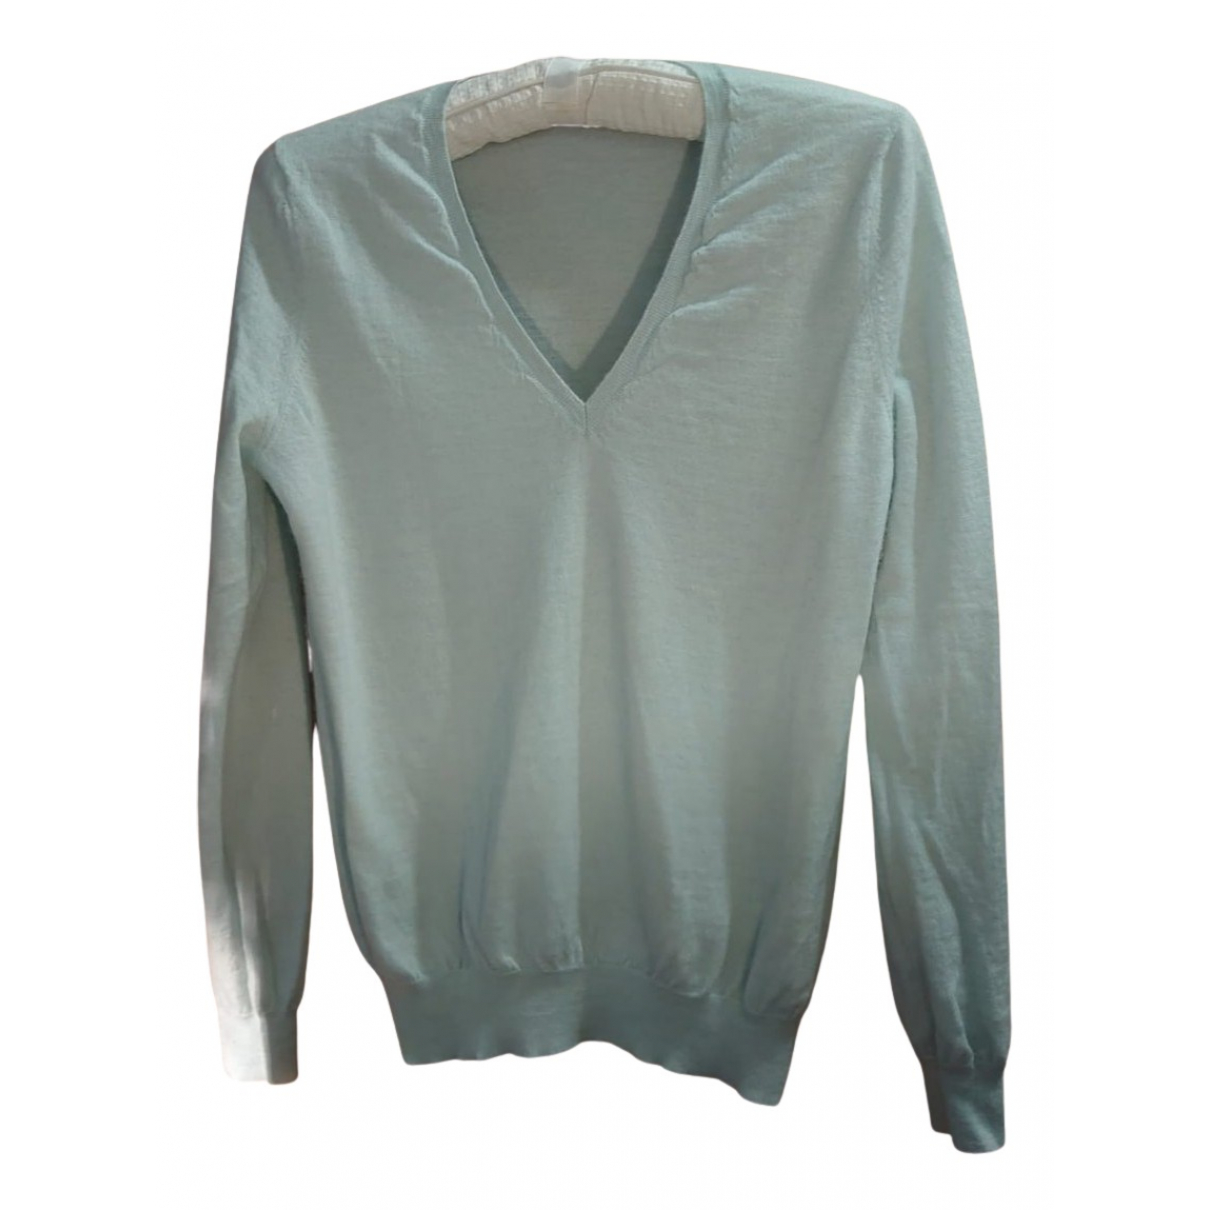 Eric Bompard N Blue Cashmere Knitwear for Women M International